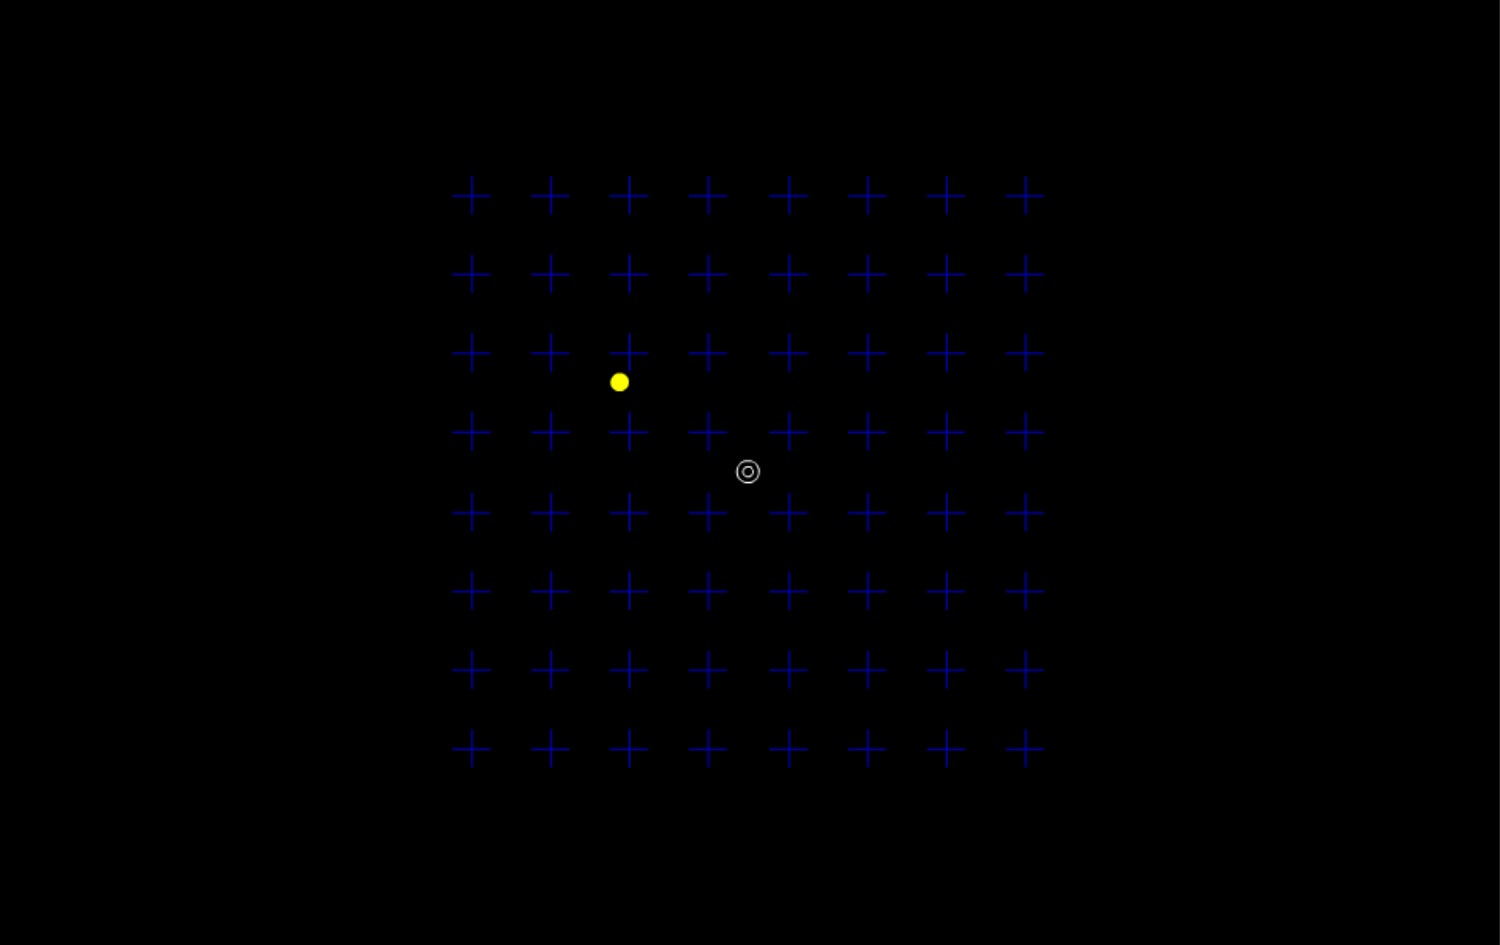 Click on the picture above for a demonstration of a typical MIB display.     Fixate the center circles while attending to the yellow circle oscillating in the upper left quadrant of the display.